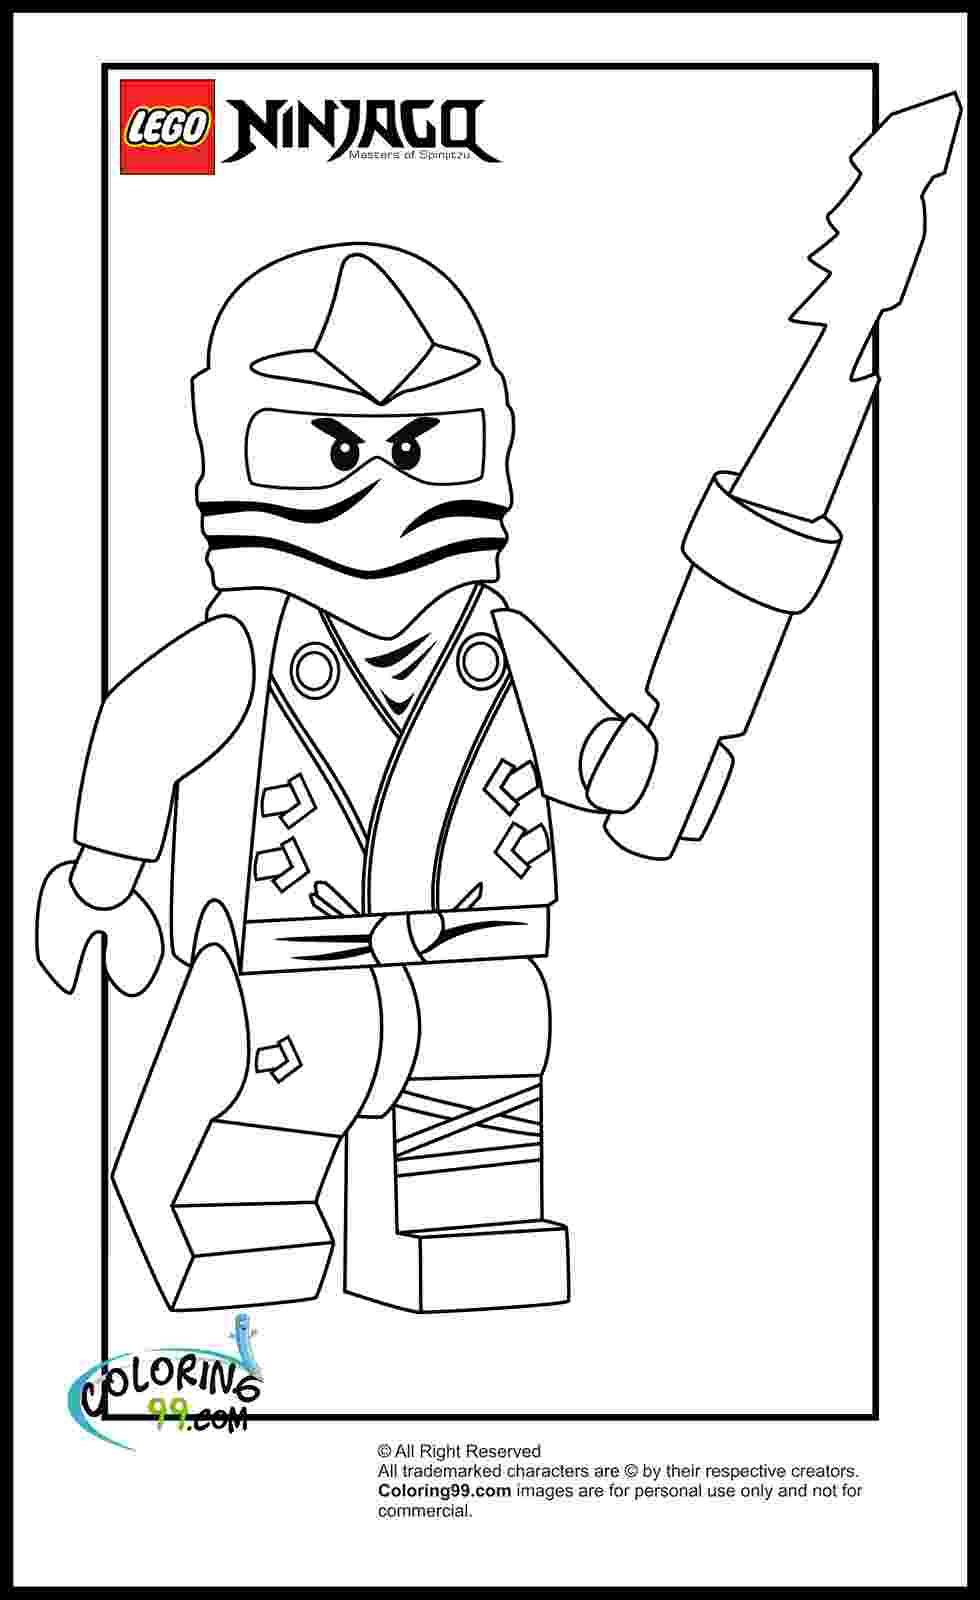 lego ninjago coloring sheets lego coloring pages best coloring pages for kids sheets lego coloring ninjago